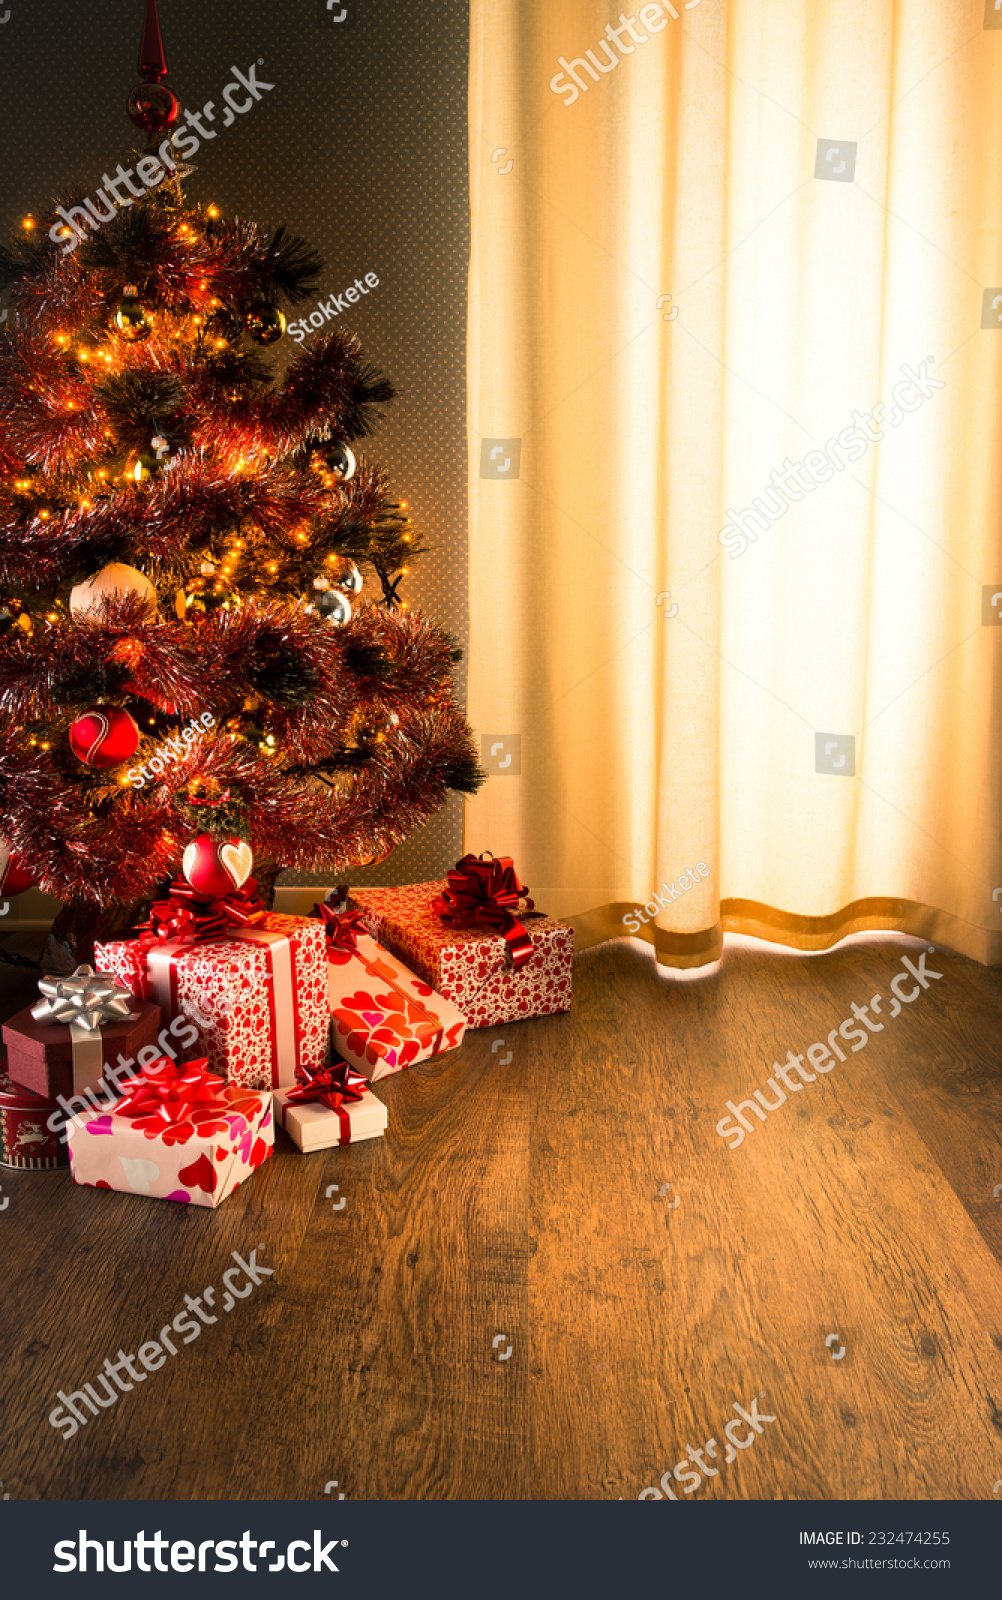 Colorful Christmas Tree Red White Gift Stock Photo Edit Now 232474255